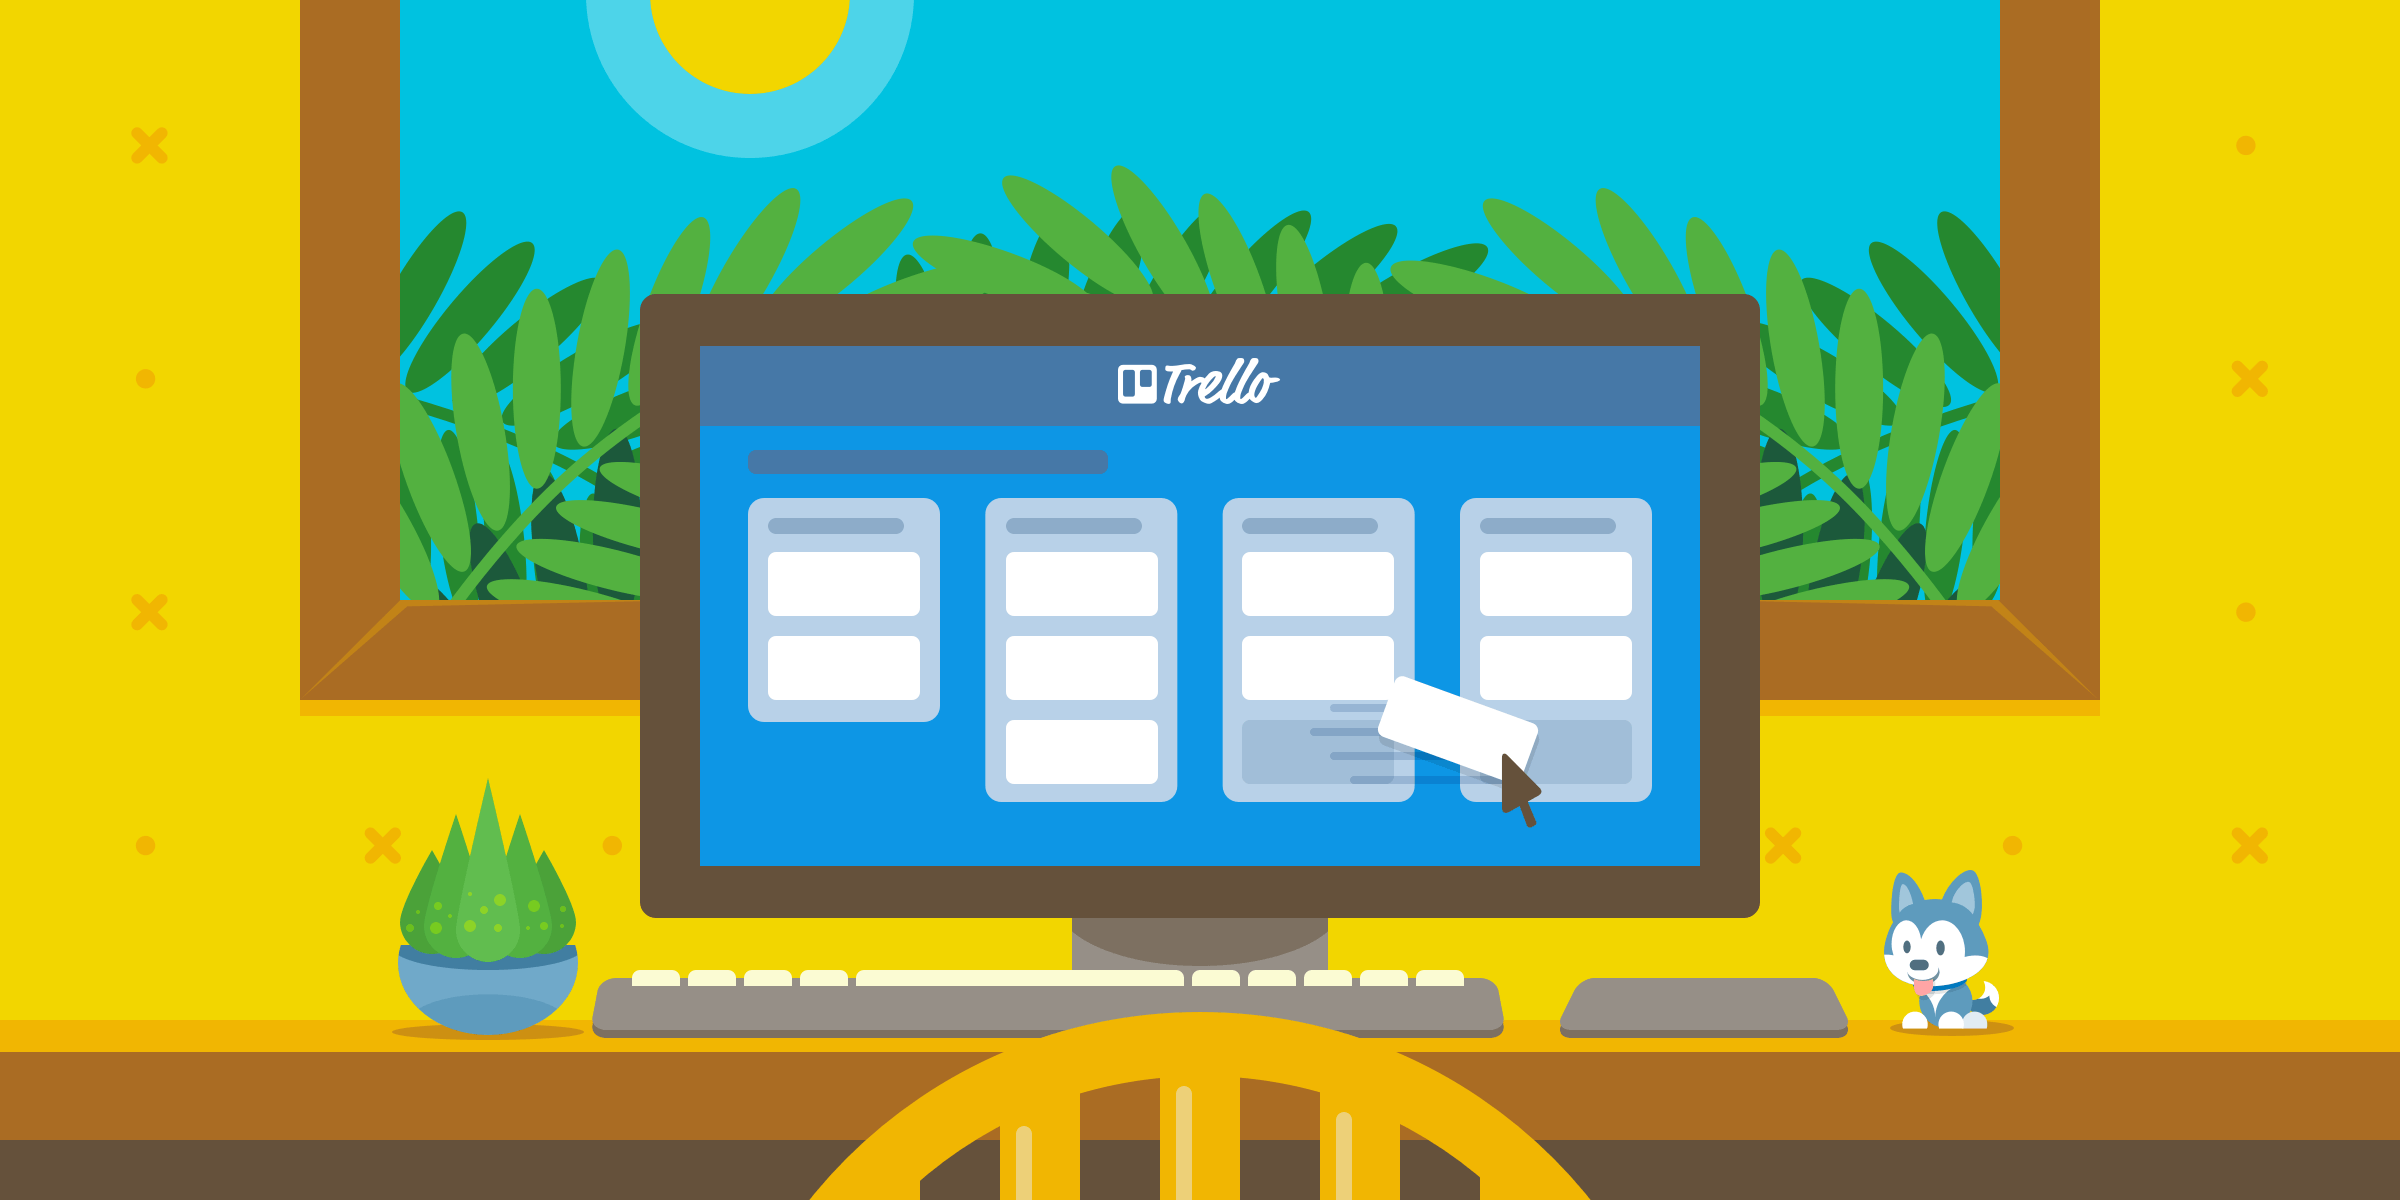 where I trello roundup